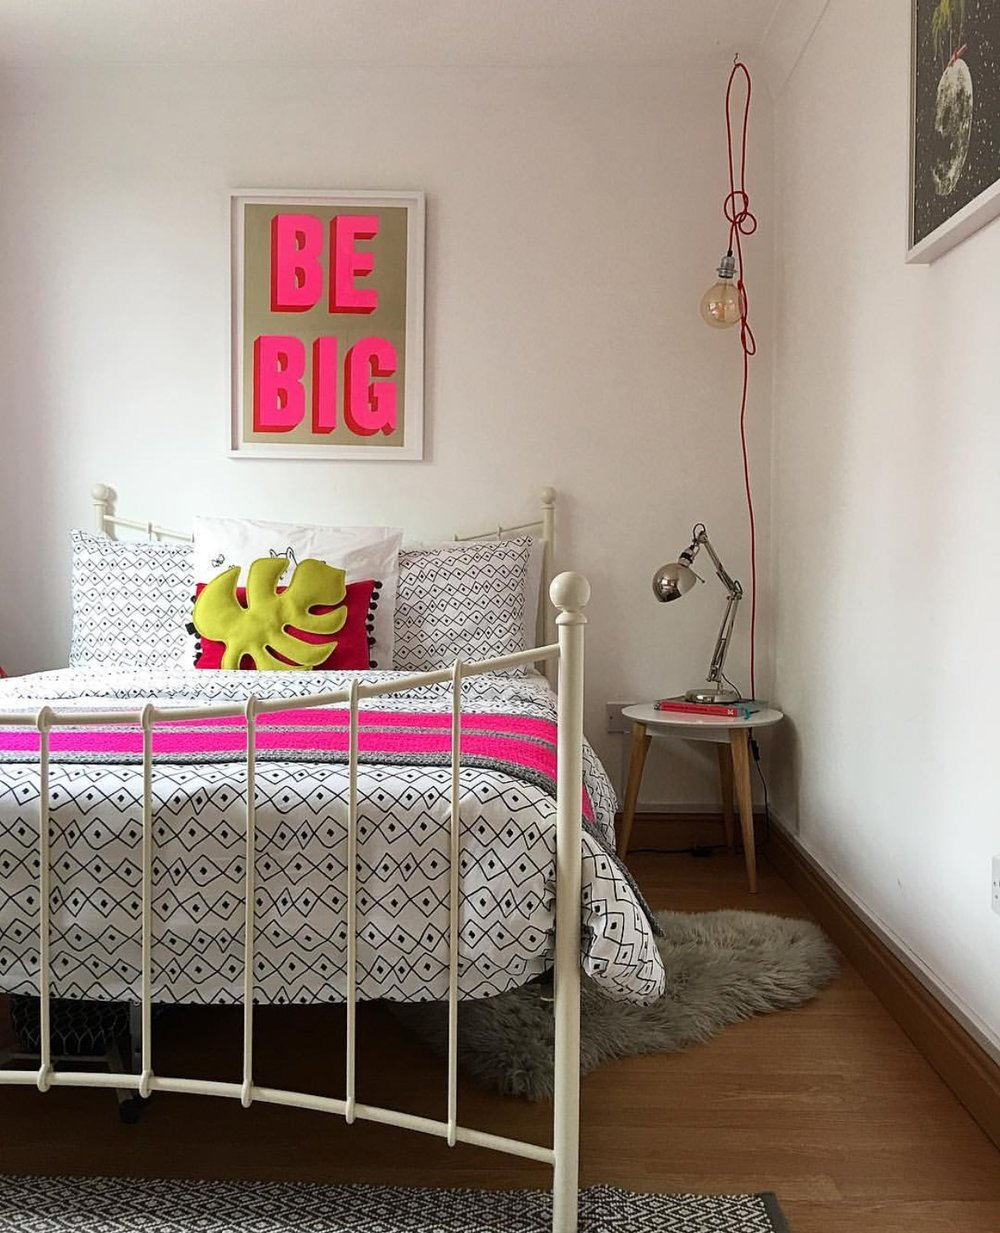 Guest bedroom detail, 'Be Big' print: Print Club London, Bedding: IKEA, Leaf: Sofa Leafs, Red pendant wires: Wickle (independent shop in Lewes, East Sussex)